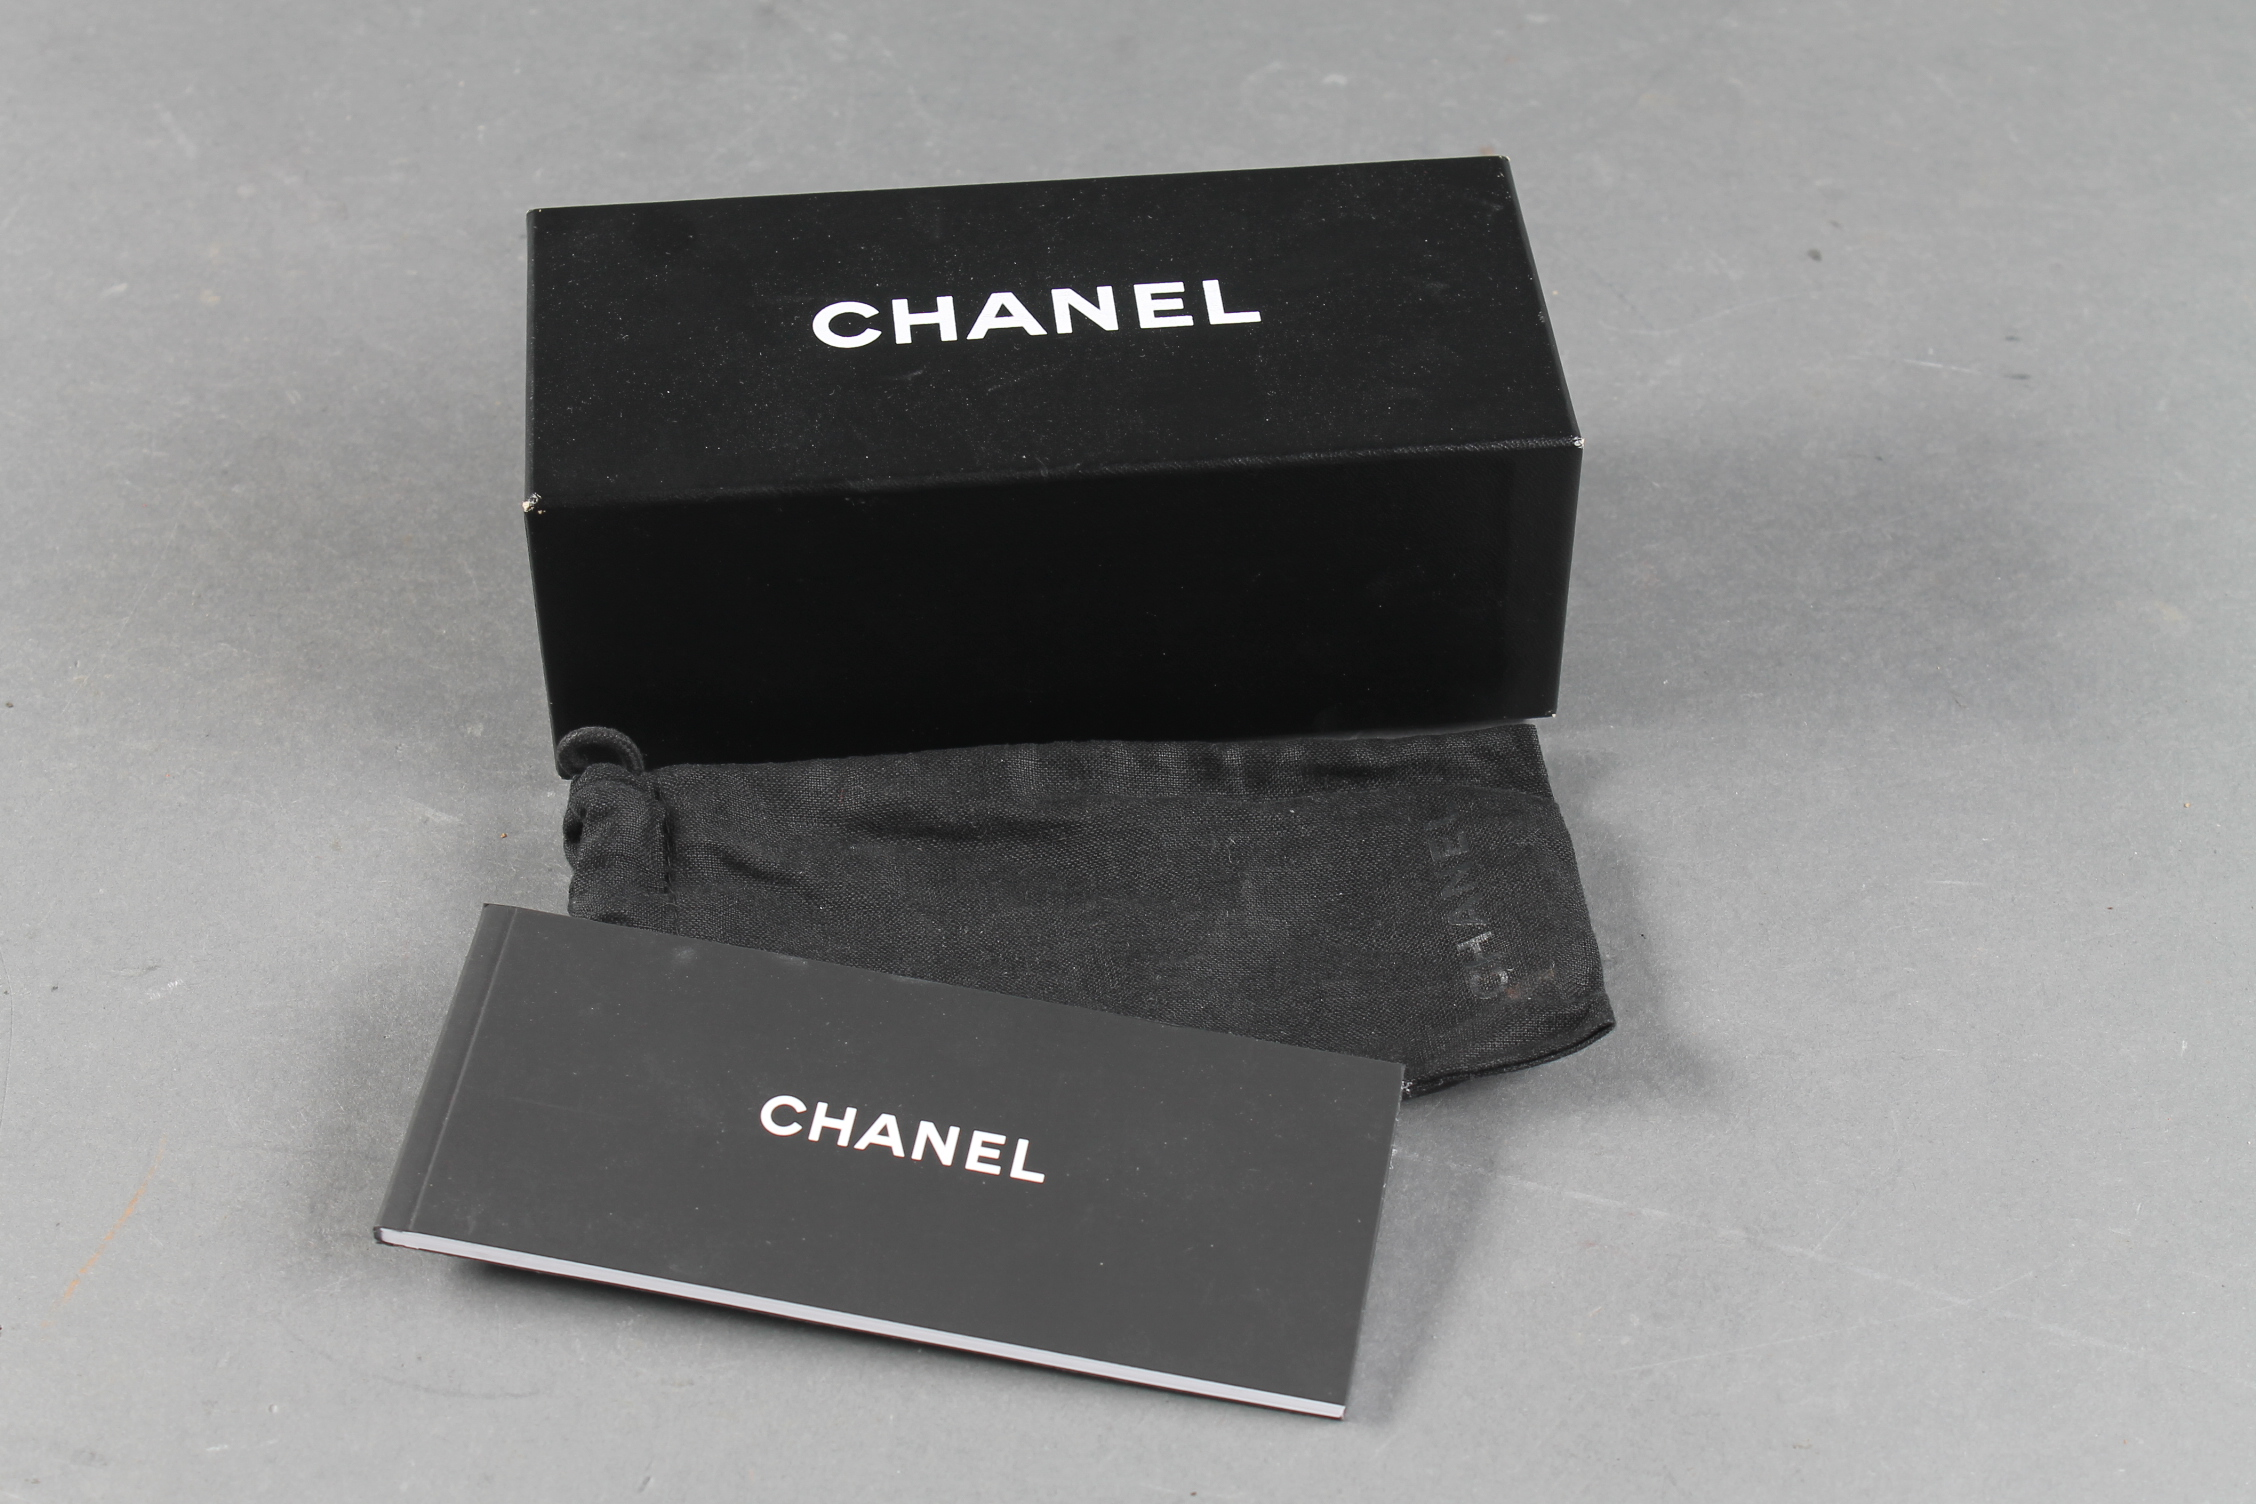 46ca75f402e0 Chanel valuations (browse auction results) - Mearto.com